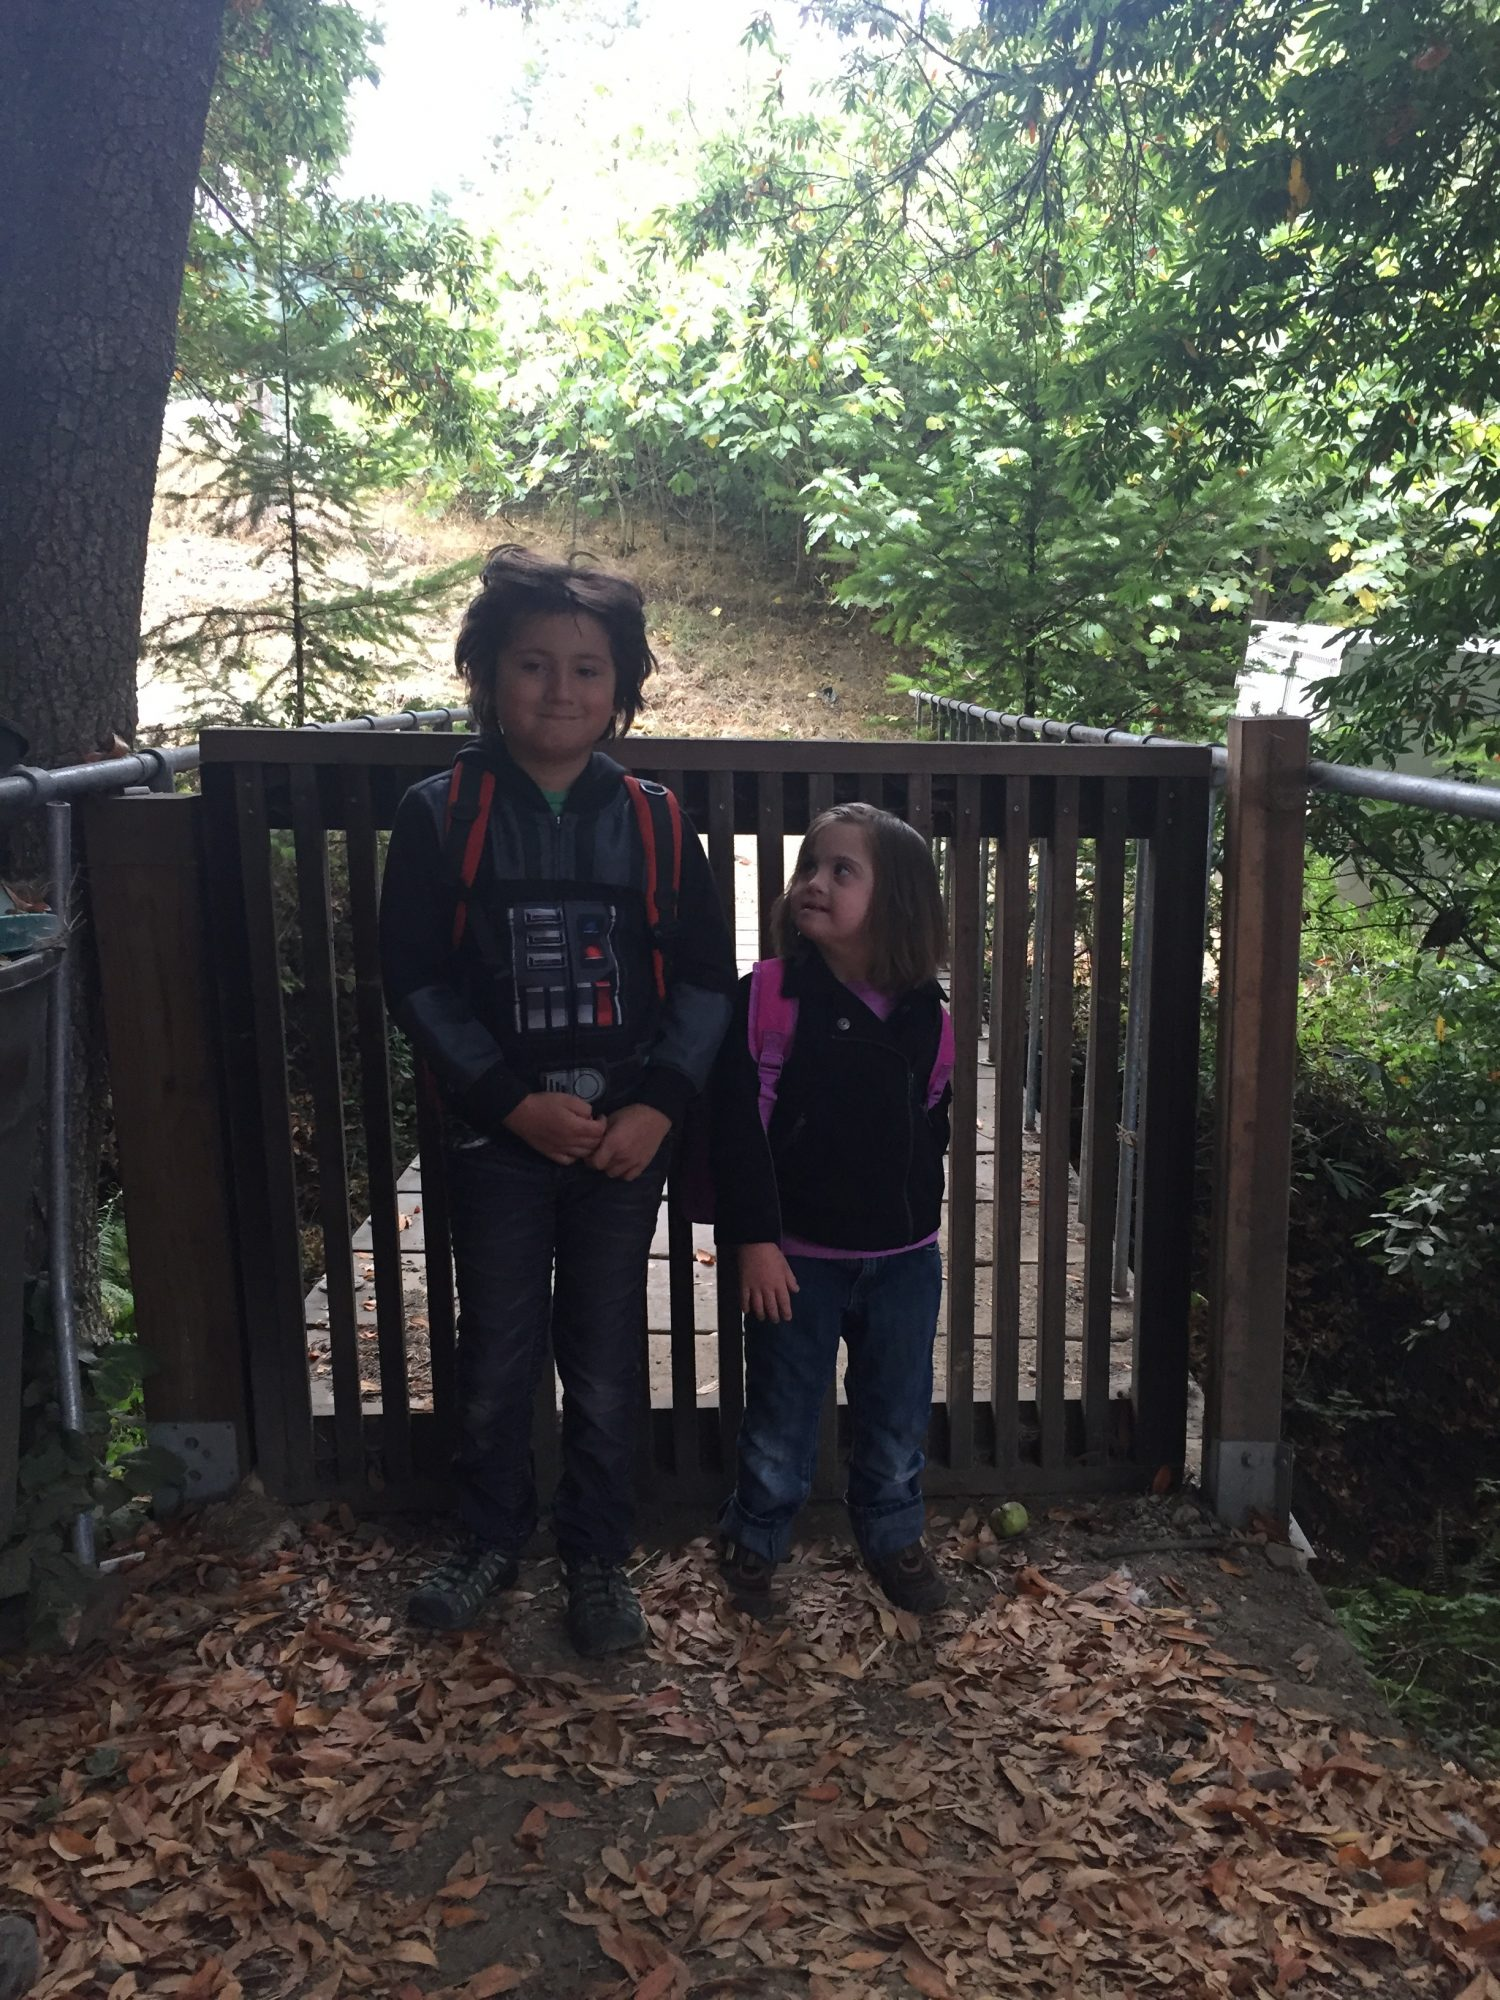 2 kids by a gate, the girl is looking up at the boy